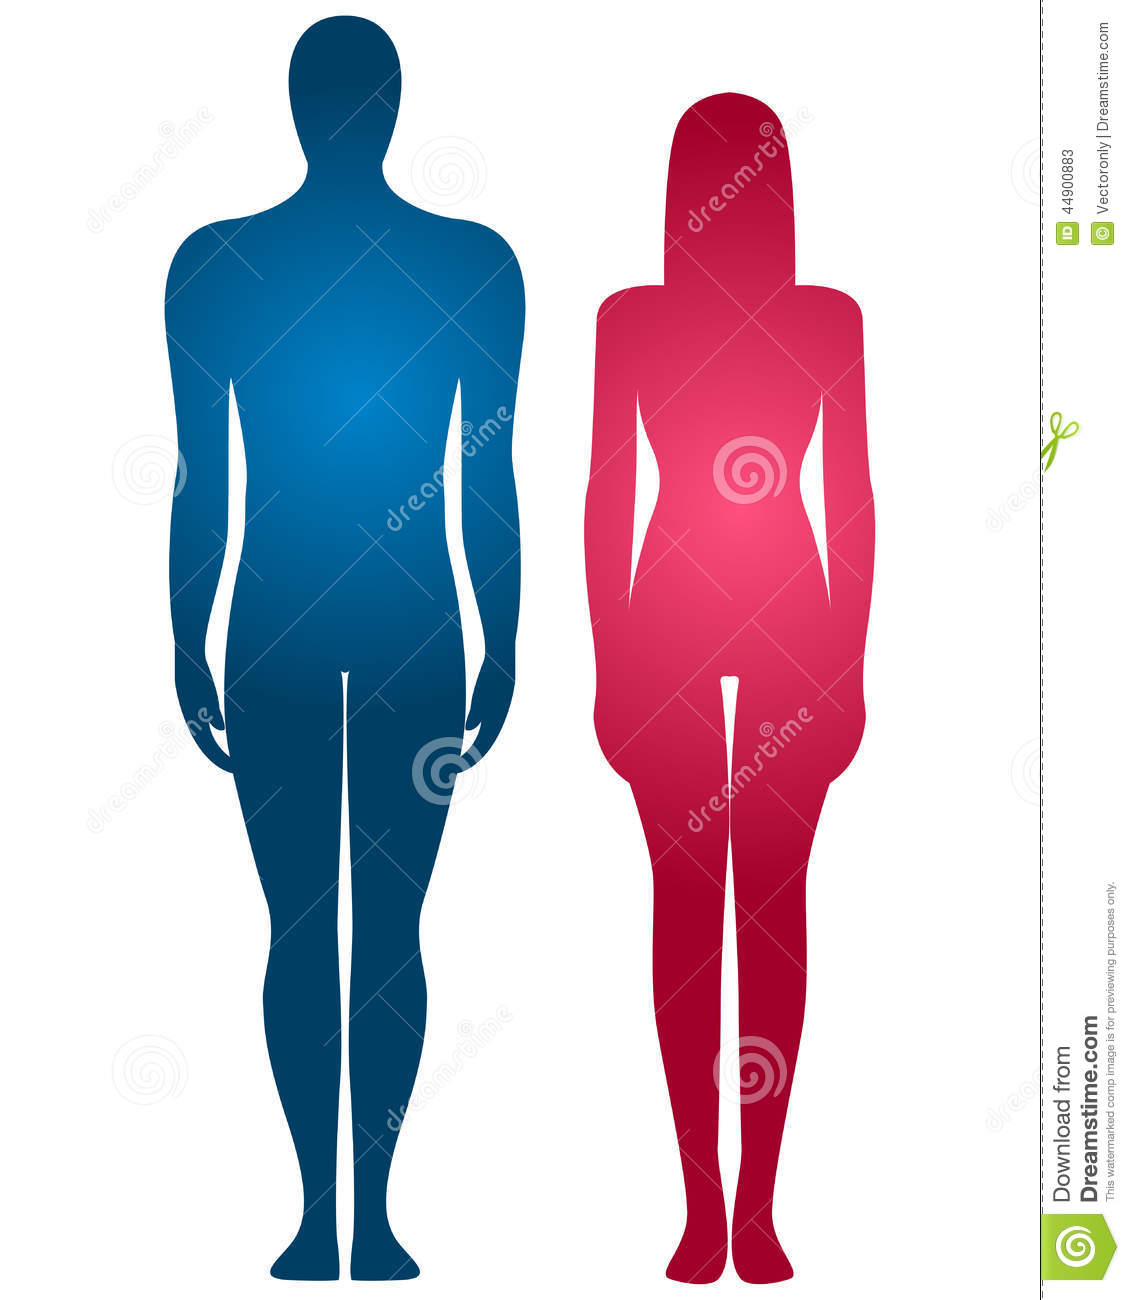 Human Body Silhouette Stock Vector Illustration Of Torso